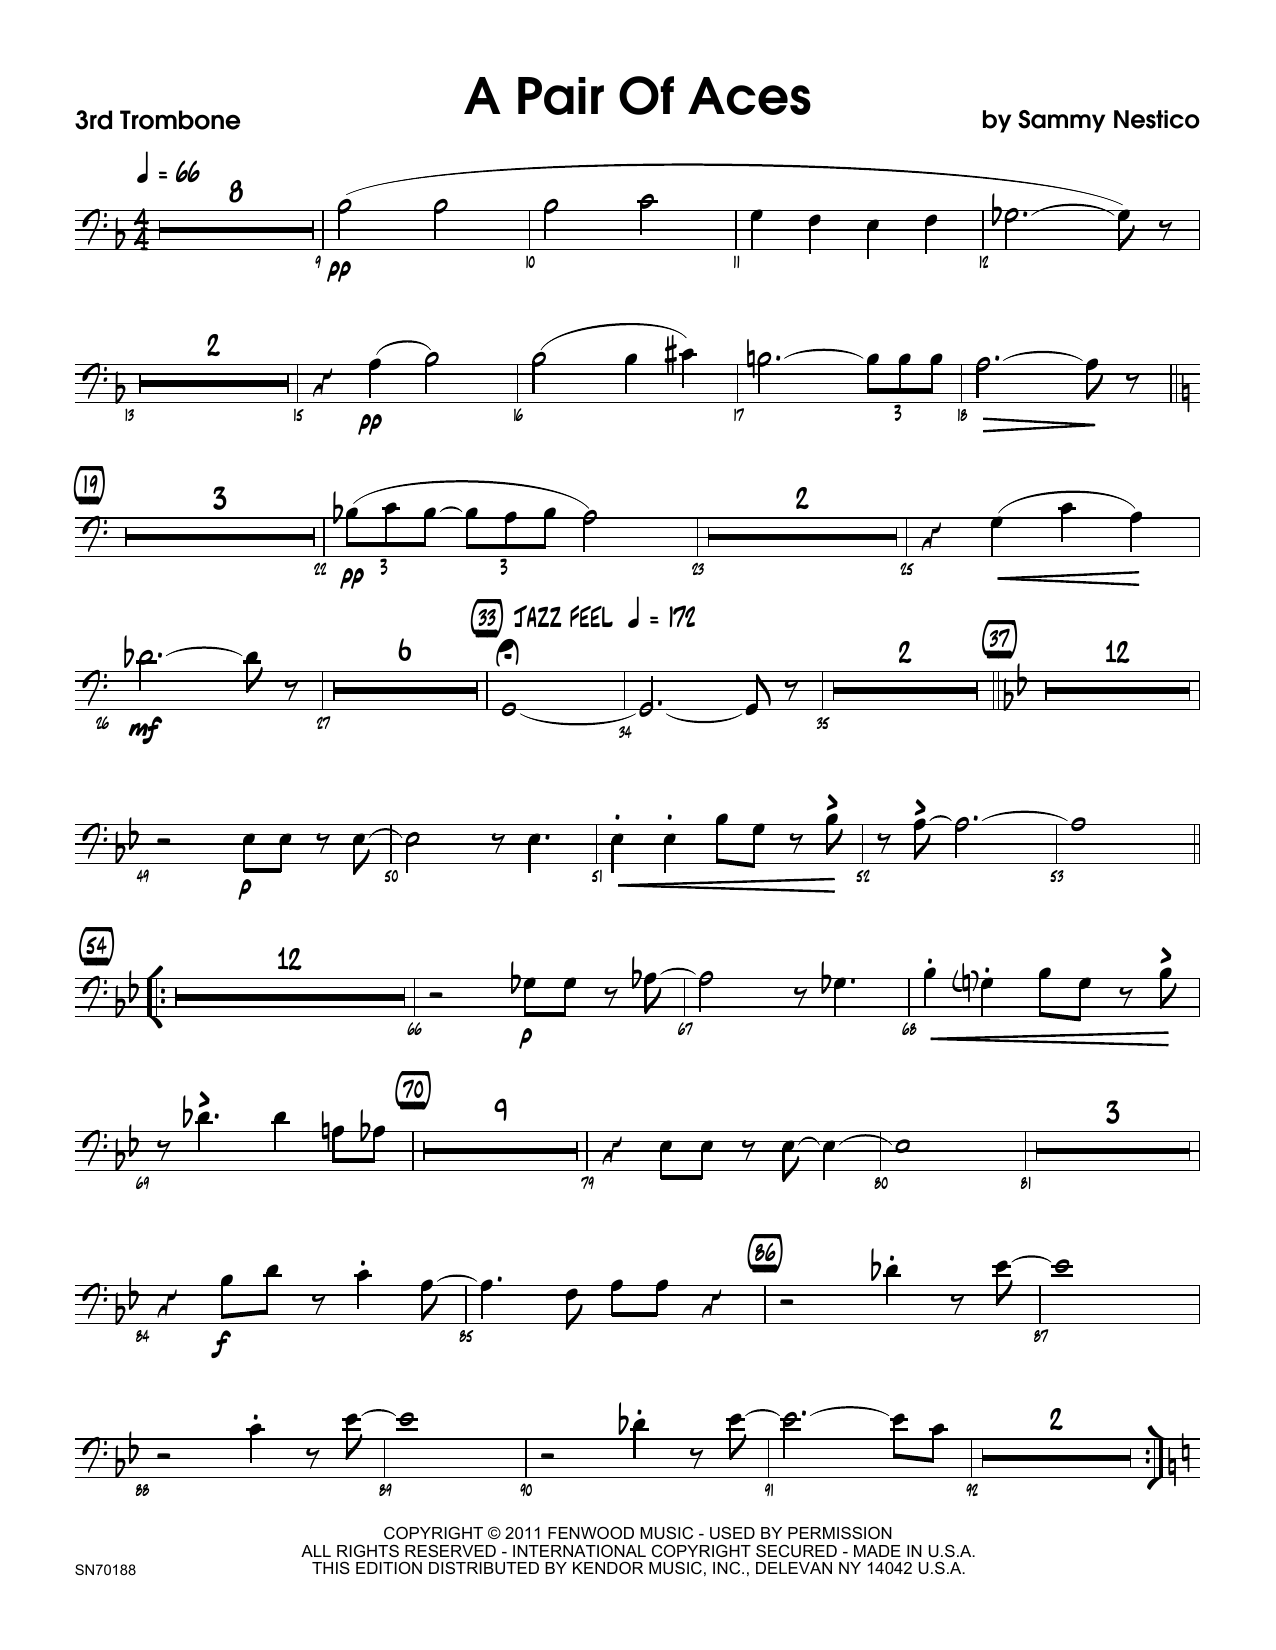 A Pair Of Aces - 3rd Trombone Sheet Music